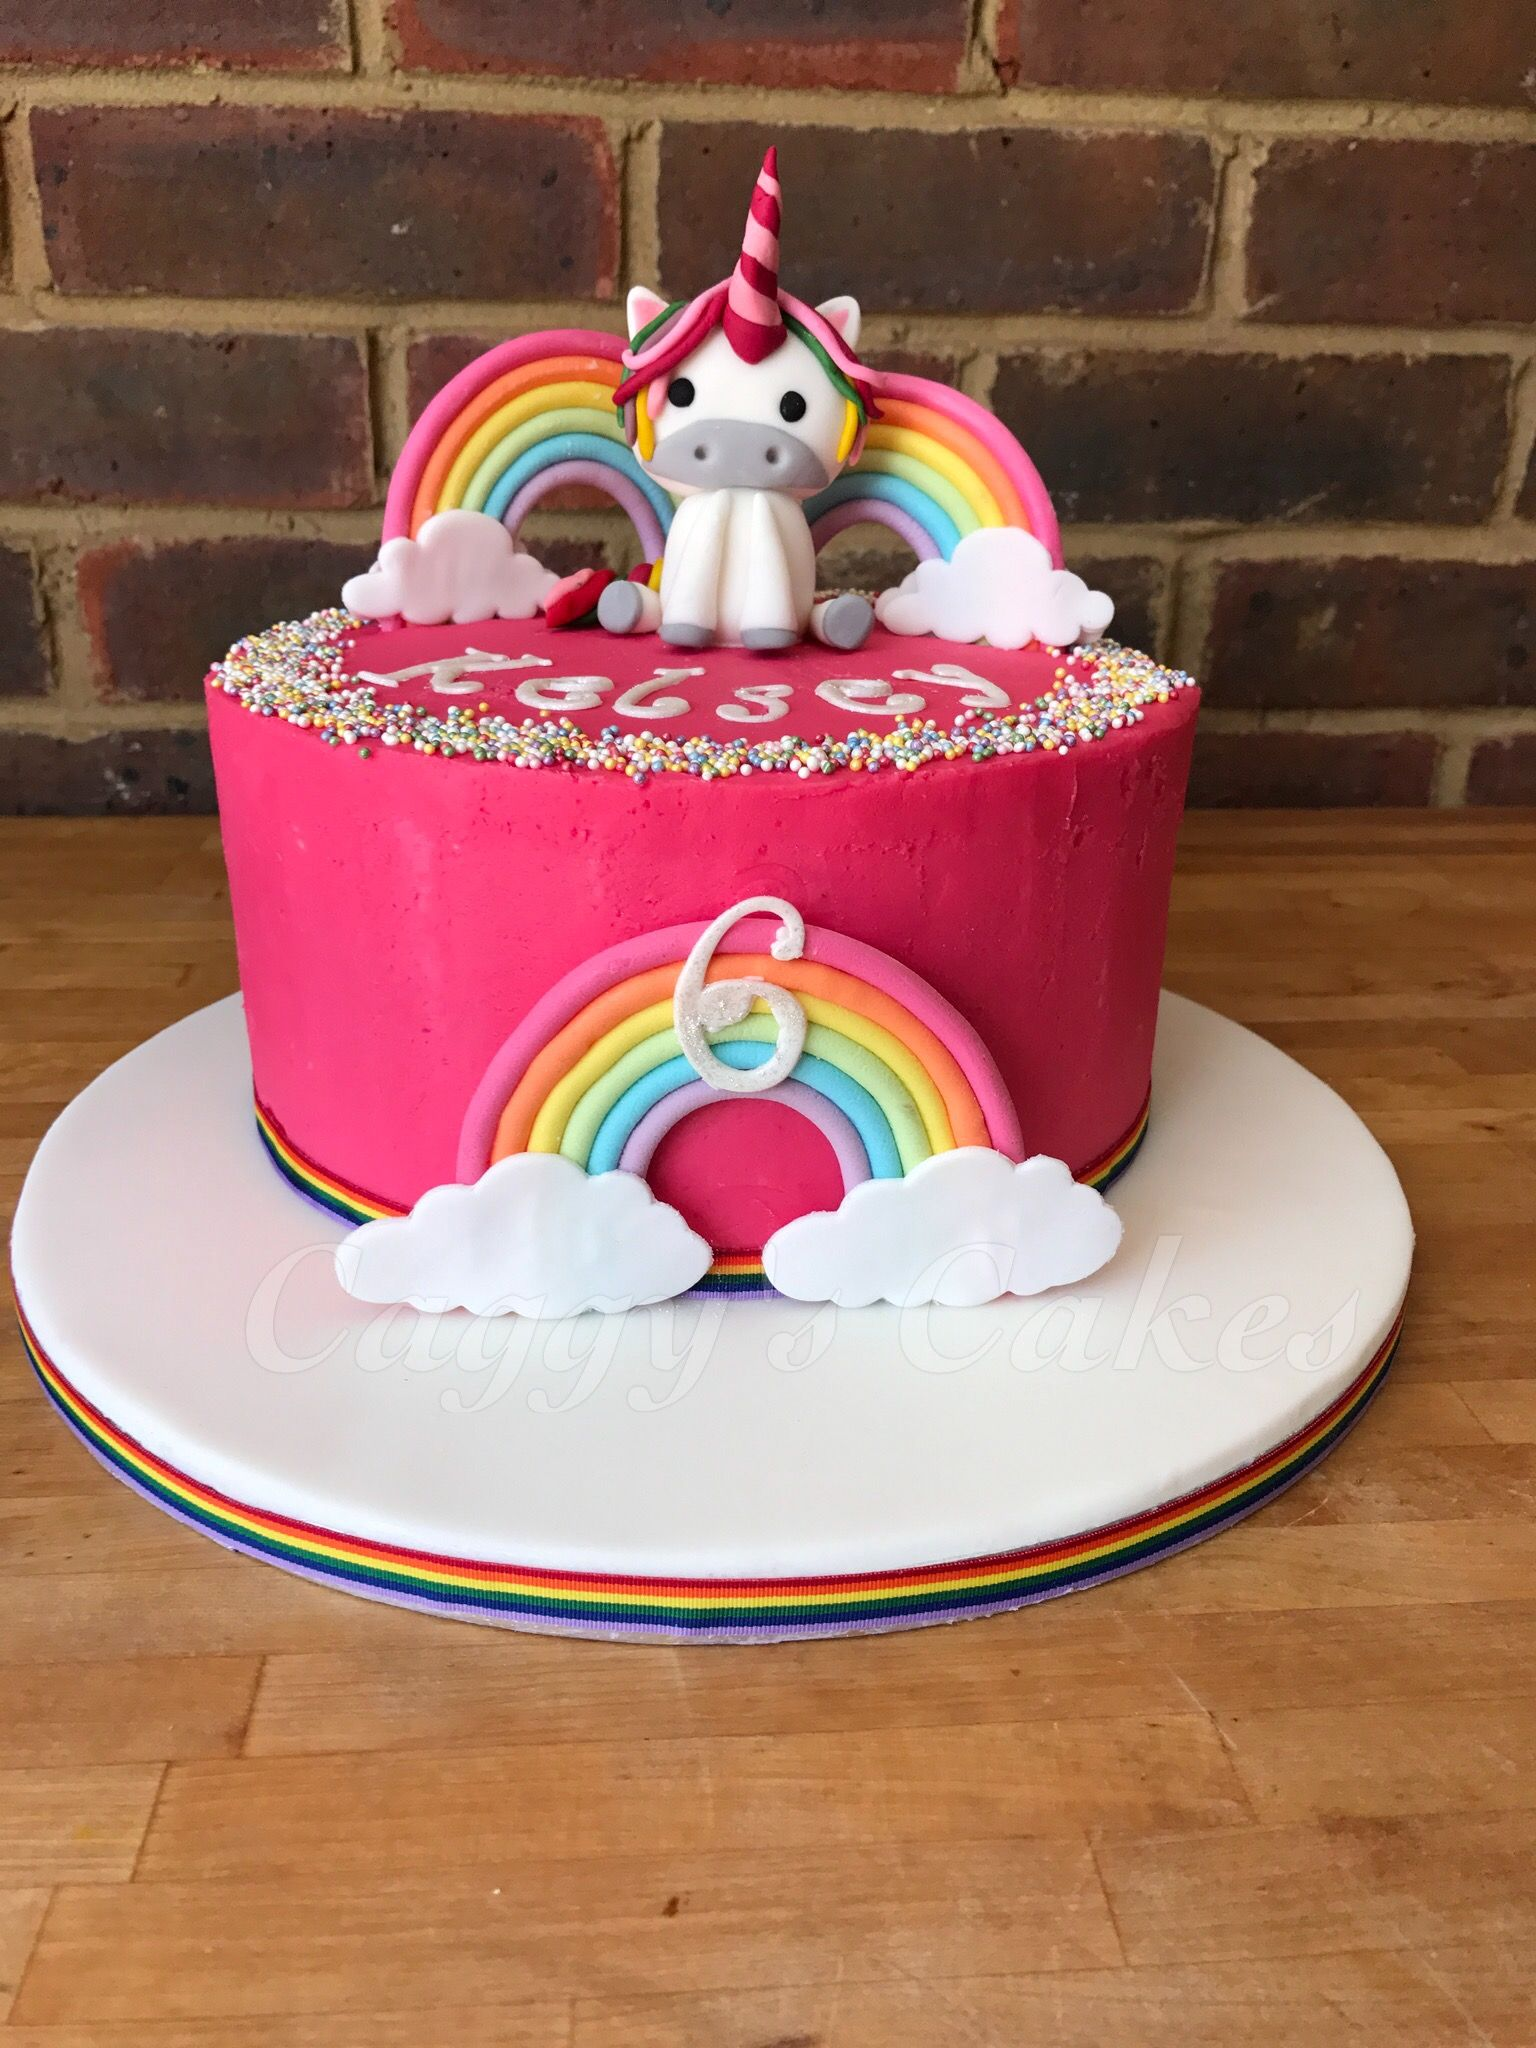 Strawberry buttercream cake with handmade unicorn and rainbows with